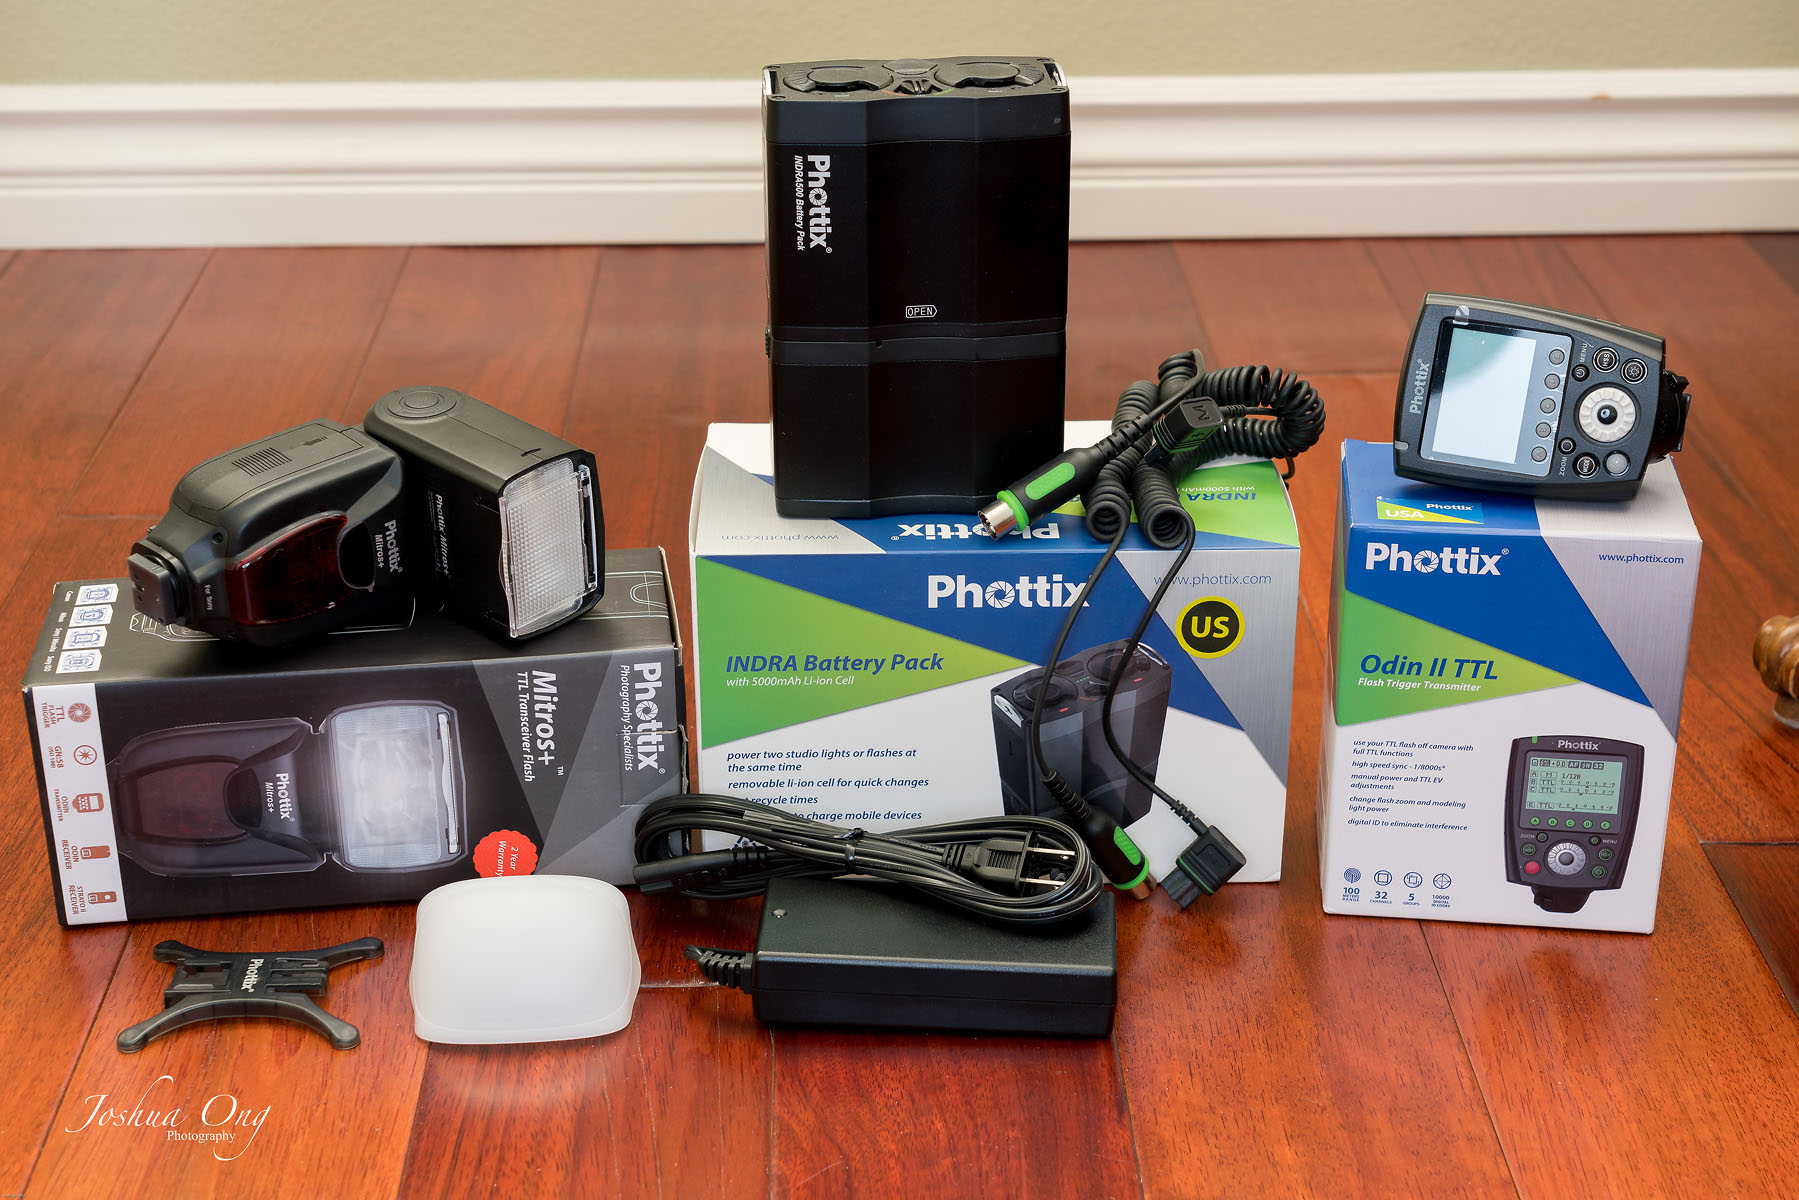 Jual Phottix Indra Battery Pack Ac Charger With Power Cable Blackvue Magic B 112 Mencegah Discharge Baterai Mobil Untuk Parking Mode Sold Mitros Flash Kit For Sony Fm Forums